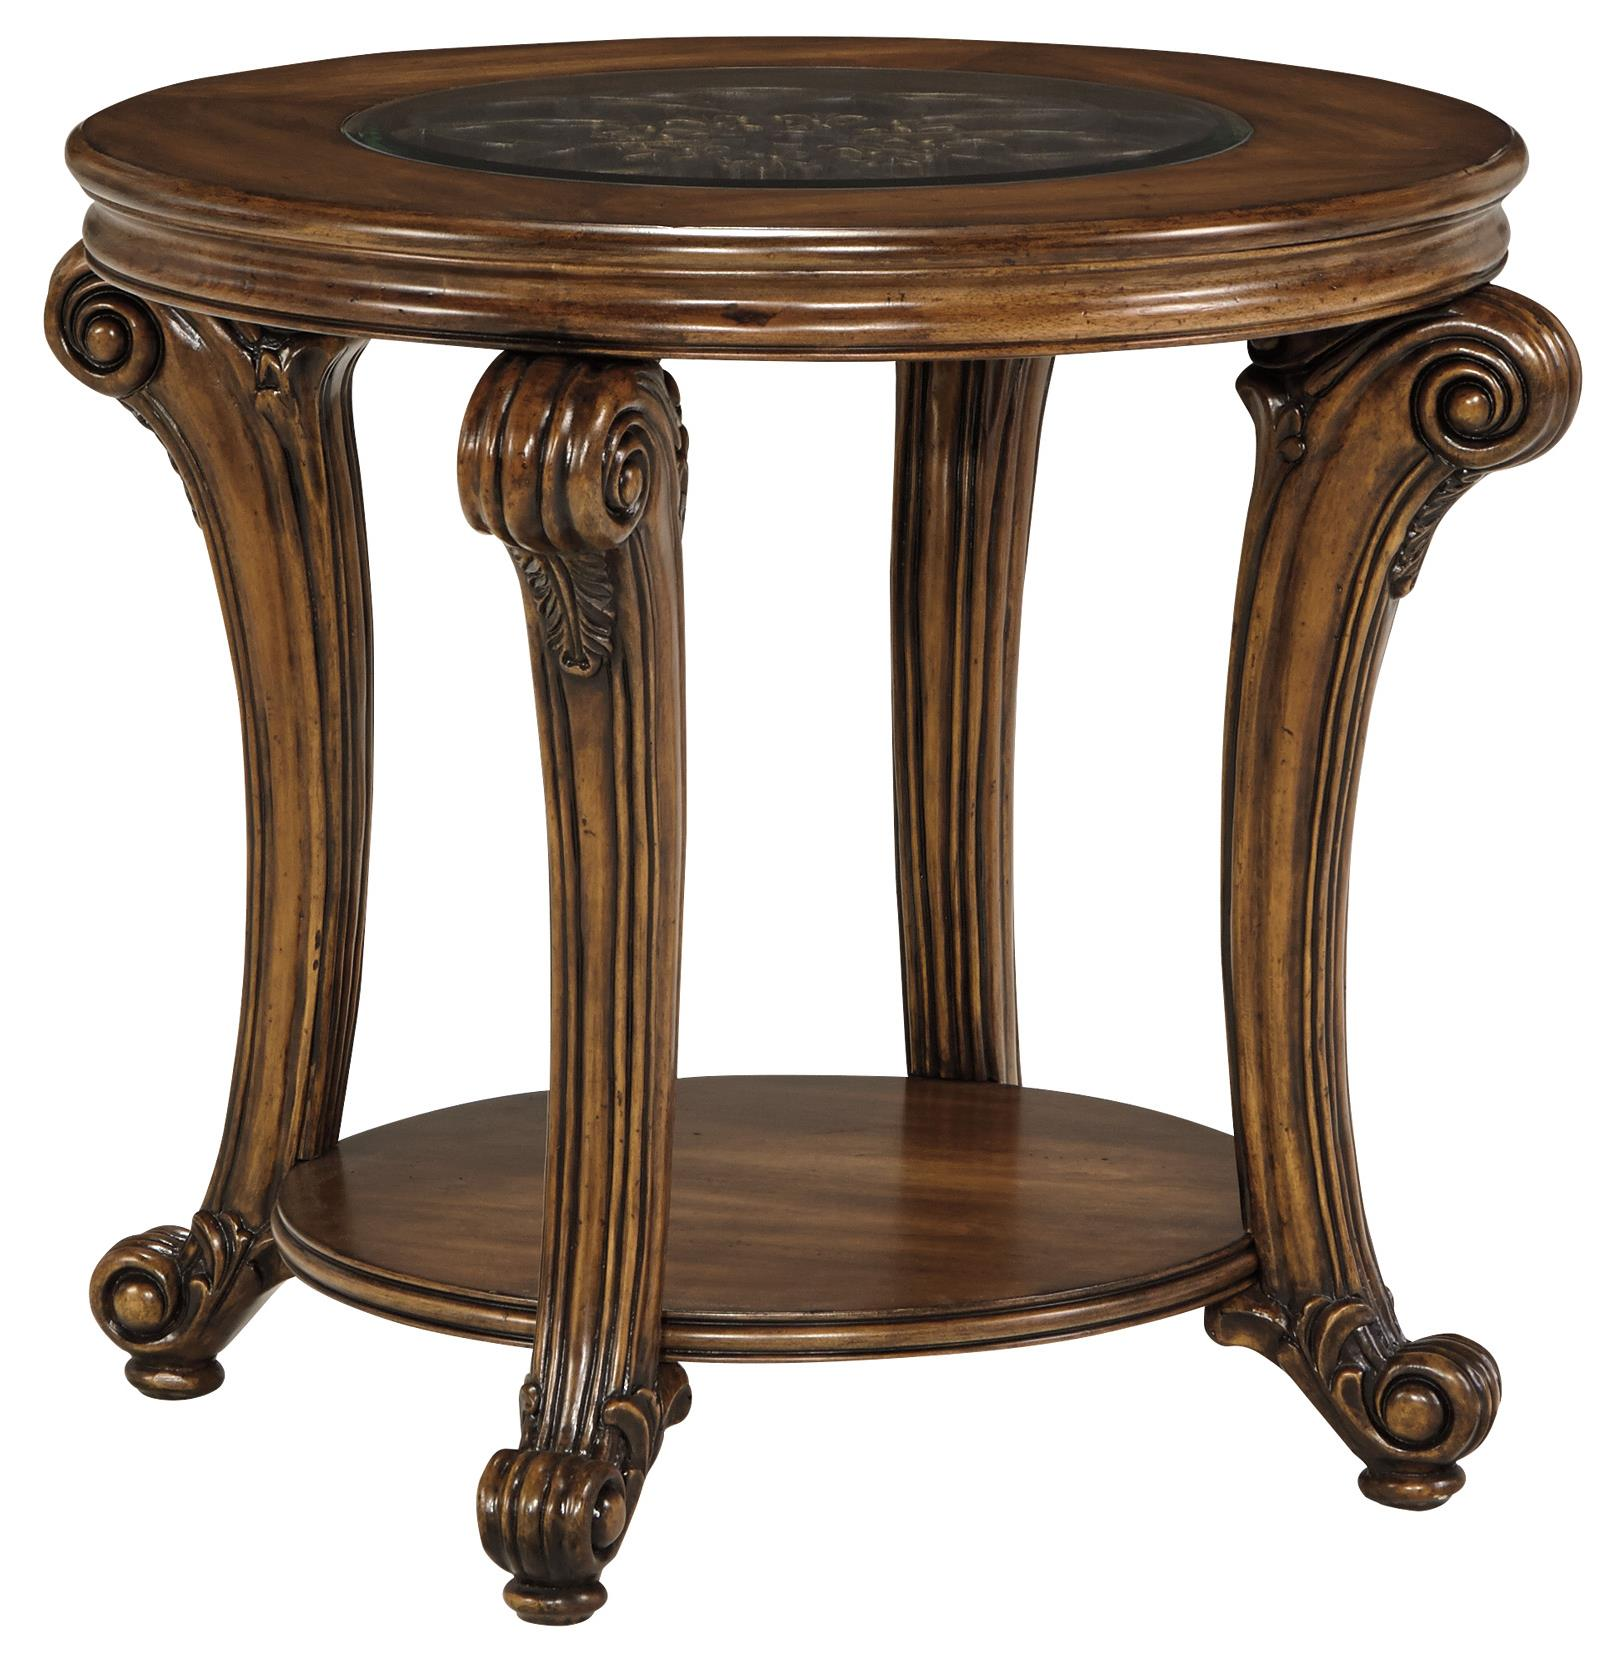 Signature Design by Ashley Sydmore Round End Table - Item Number: T799-6